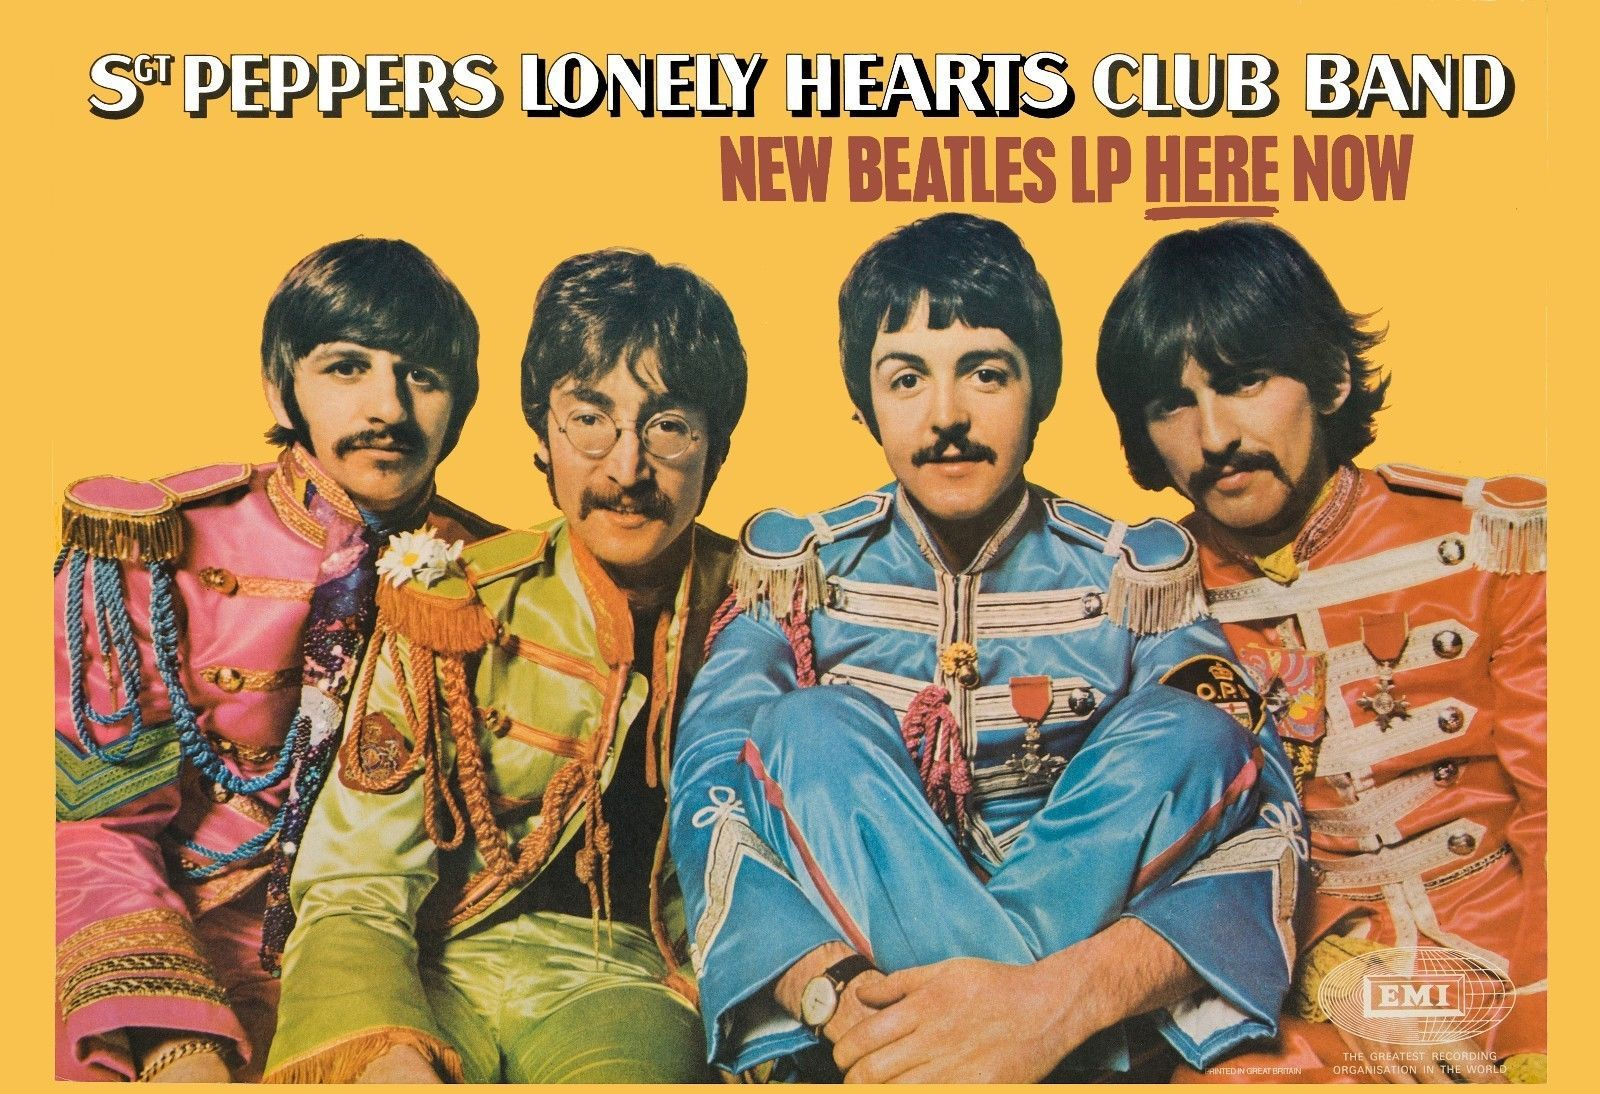 Sgt pepper promo window card